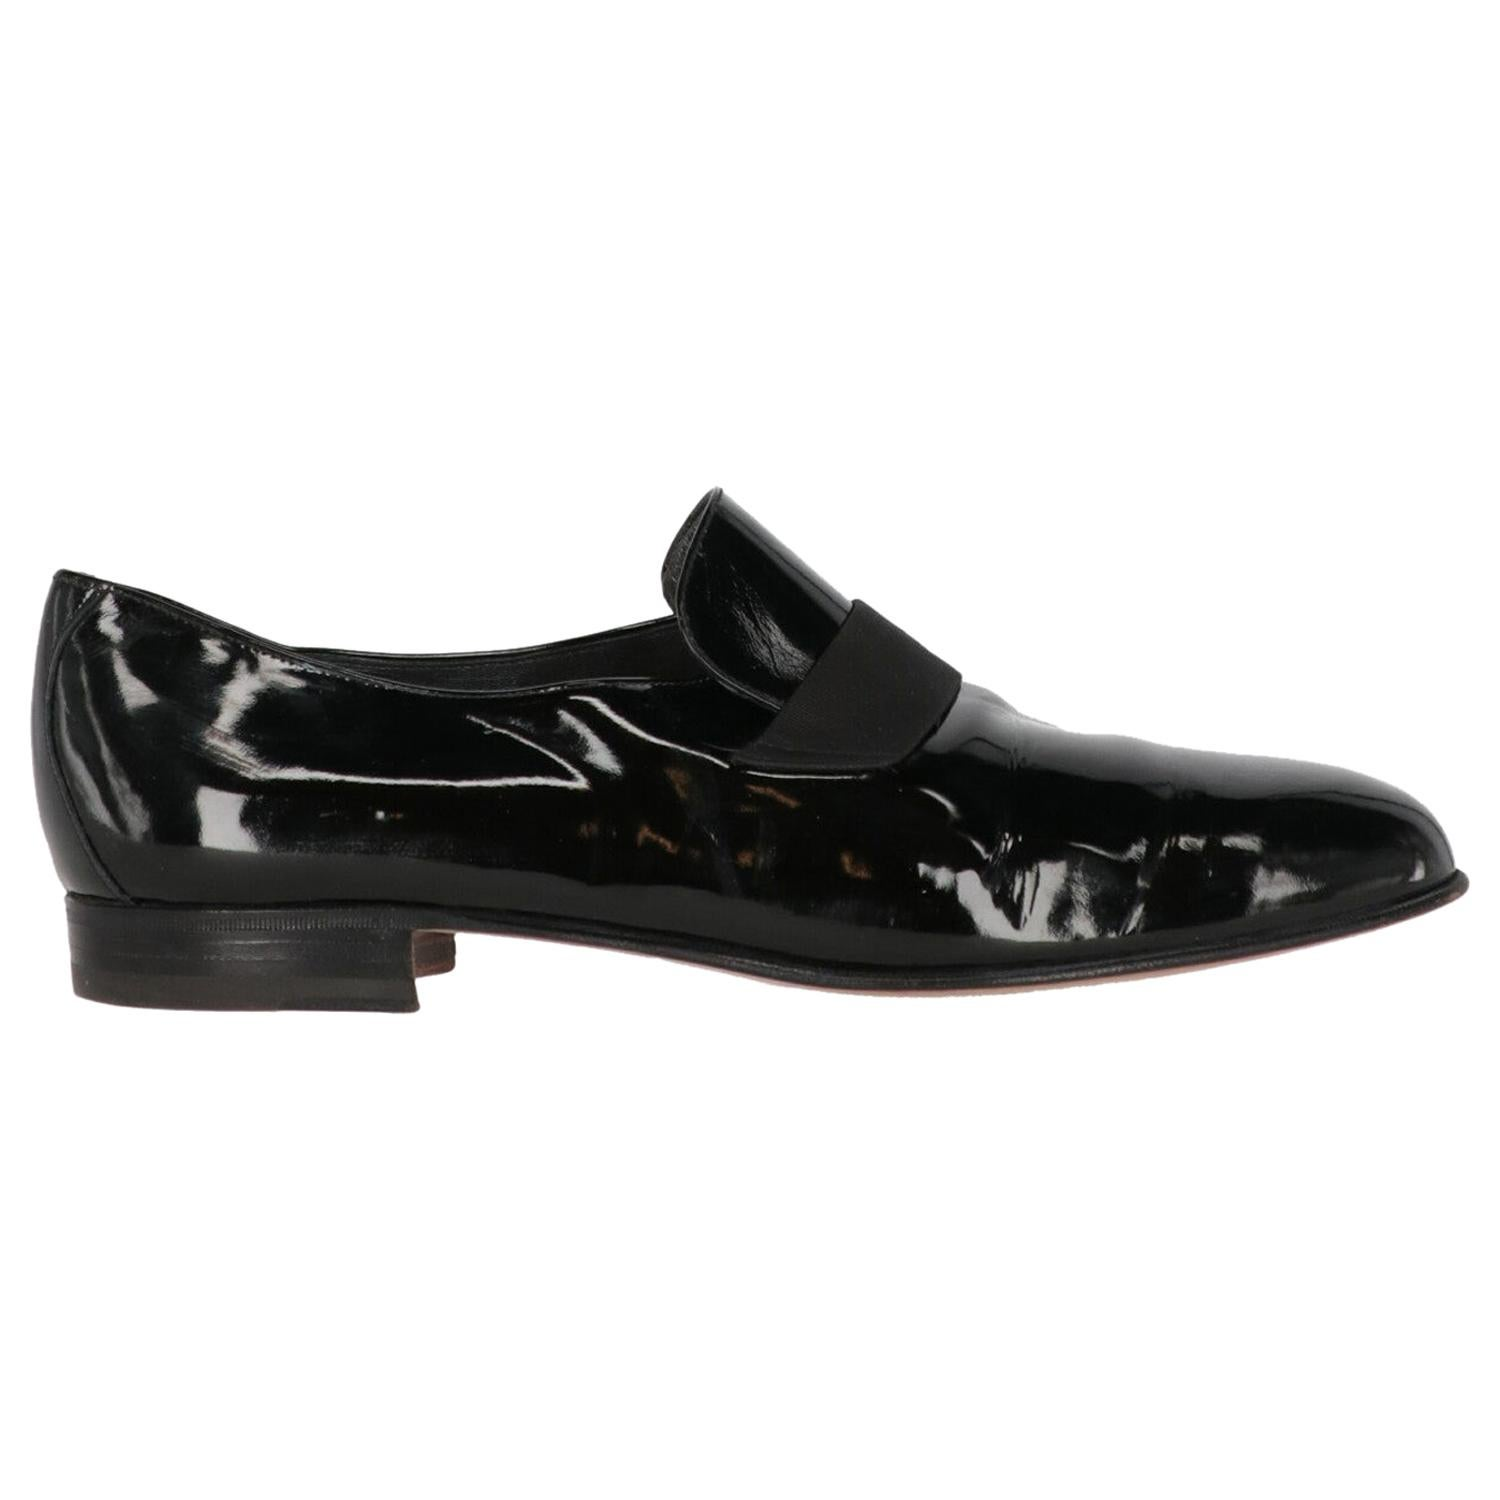 1990s Bruno Magli Black Pantent Loafers